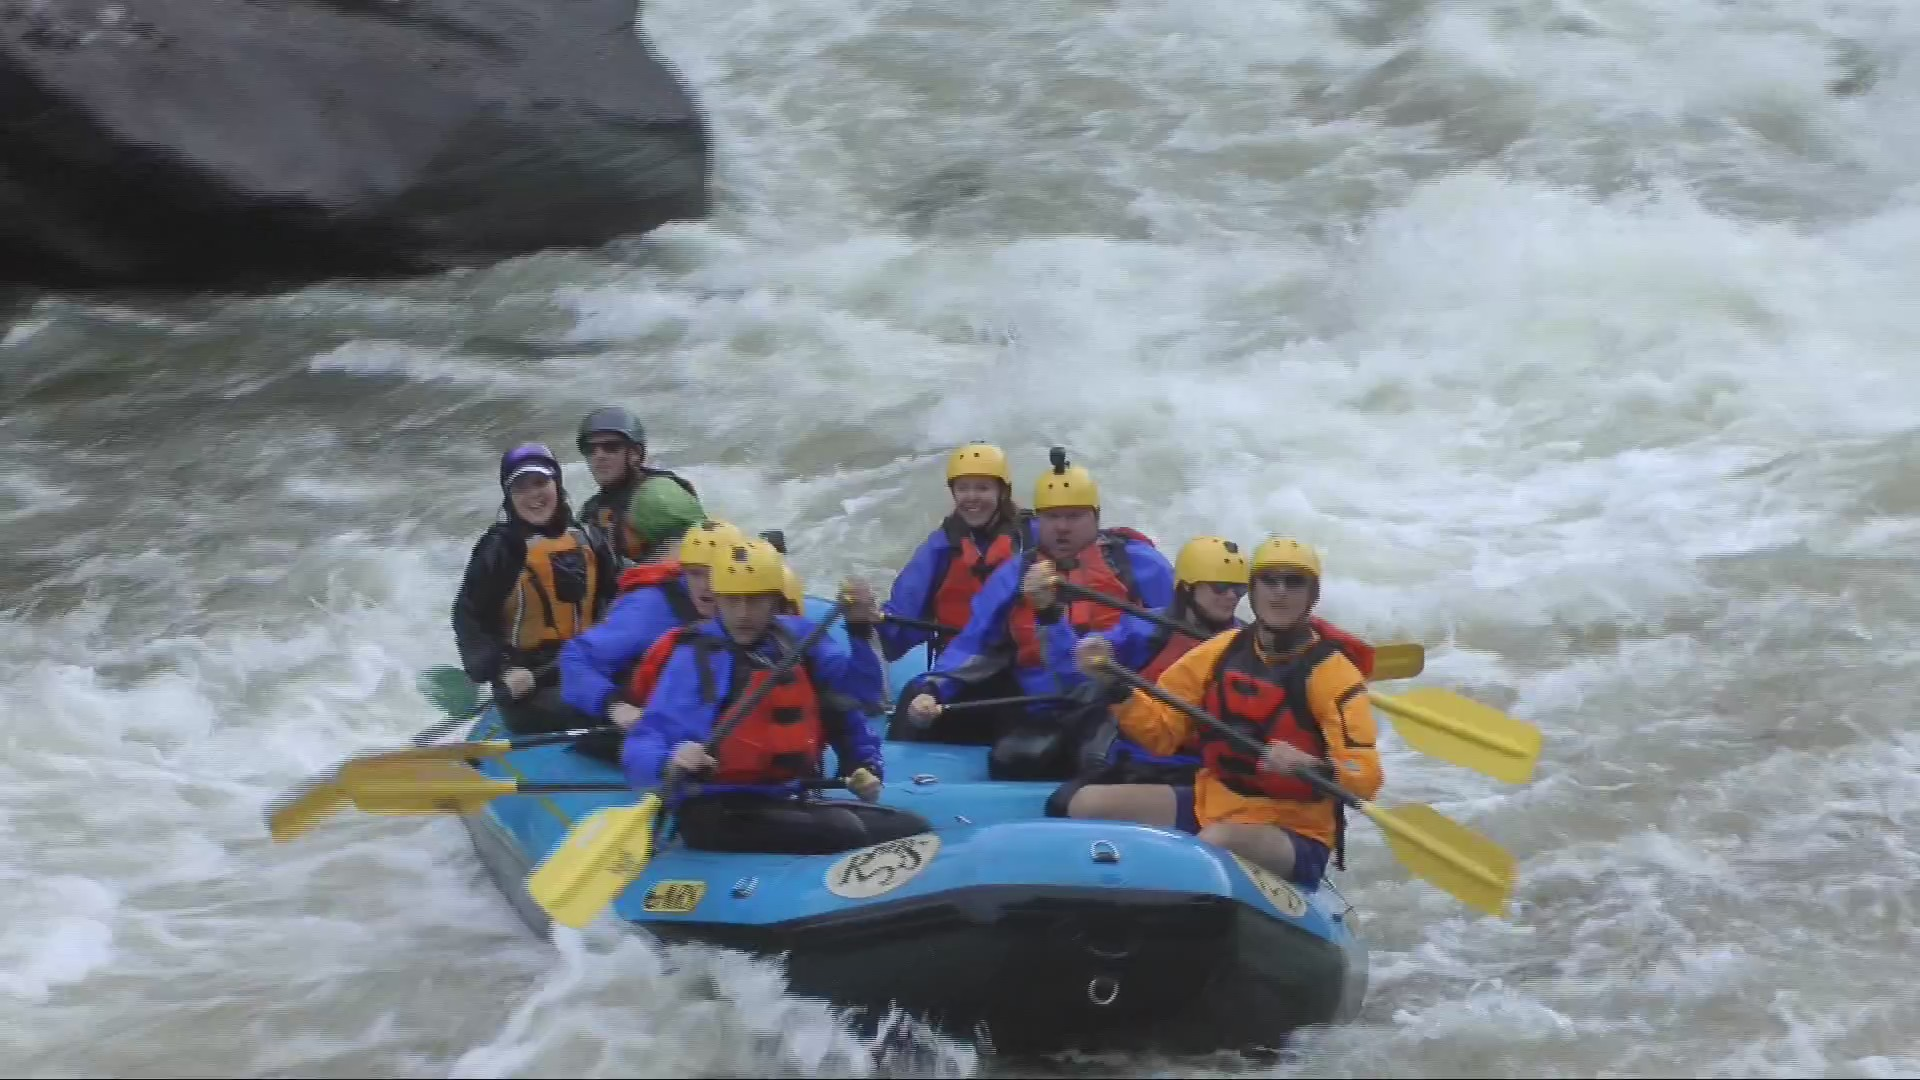 Gauley Season: Riding the Beast of the East